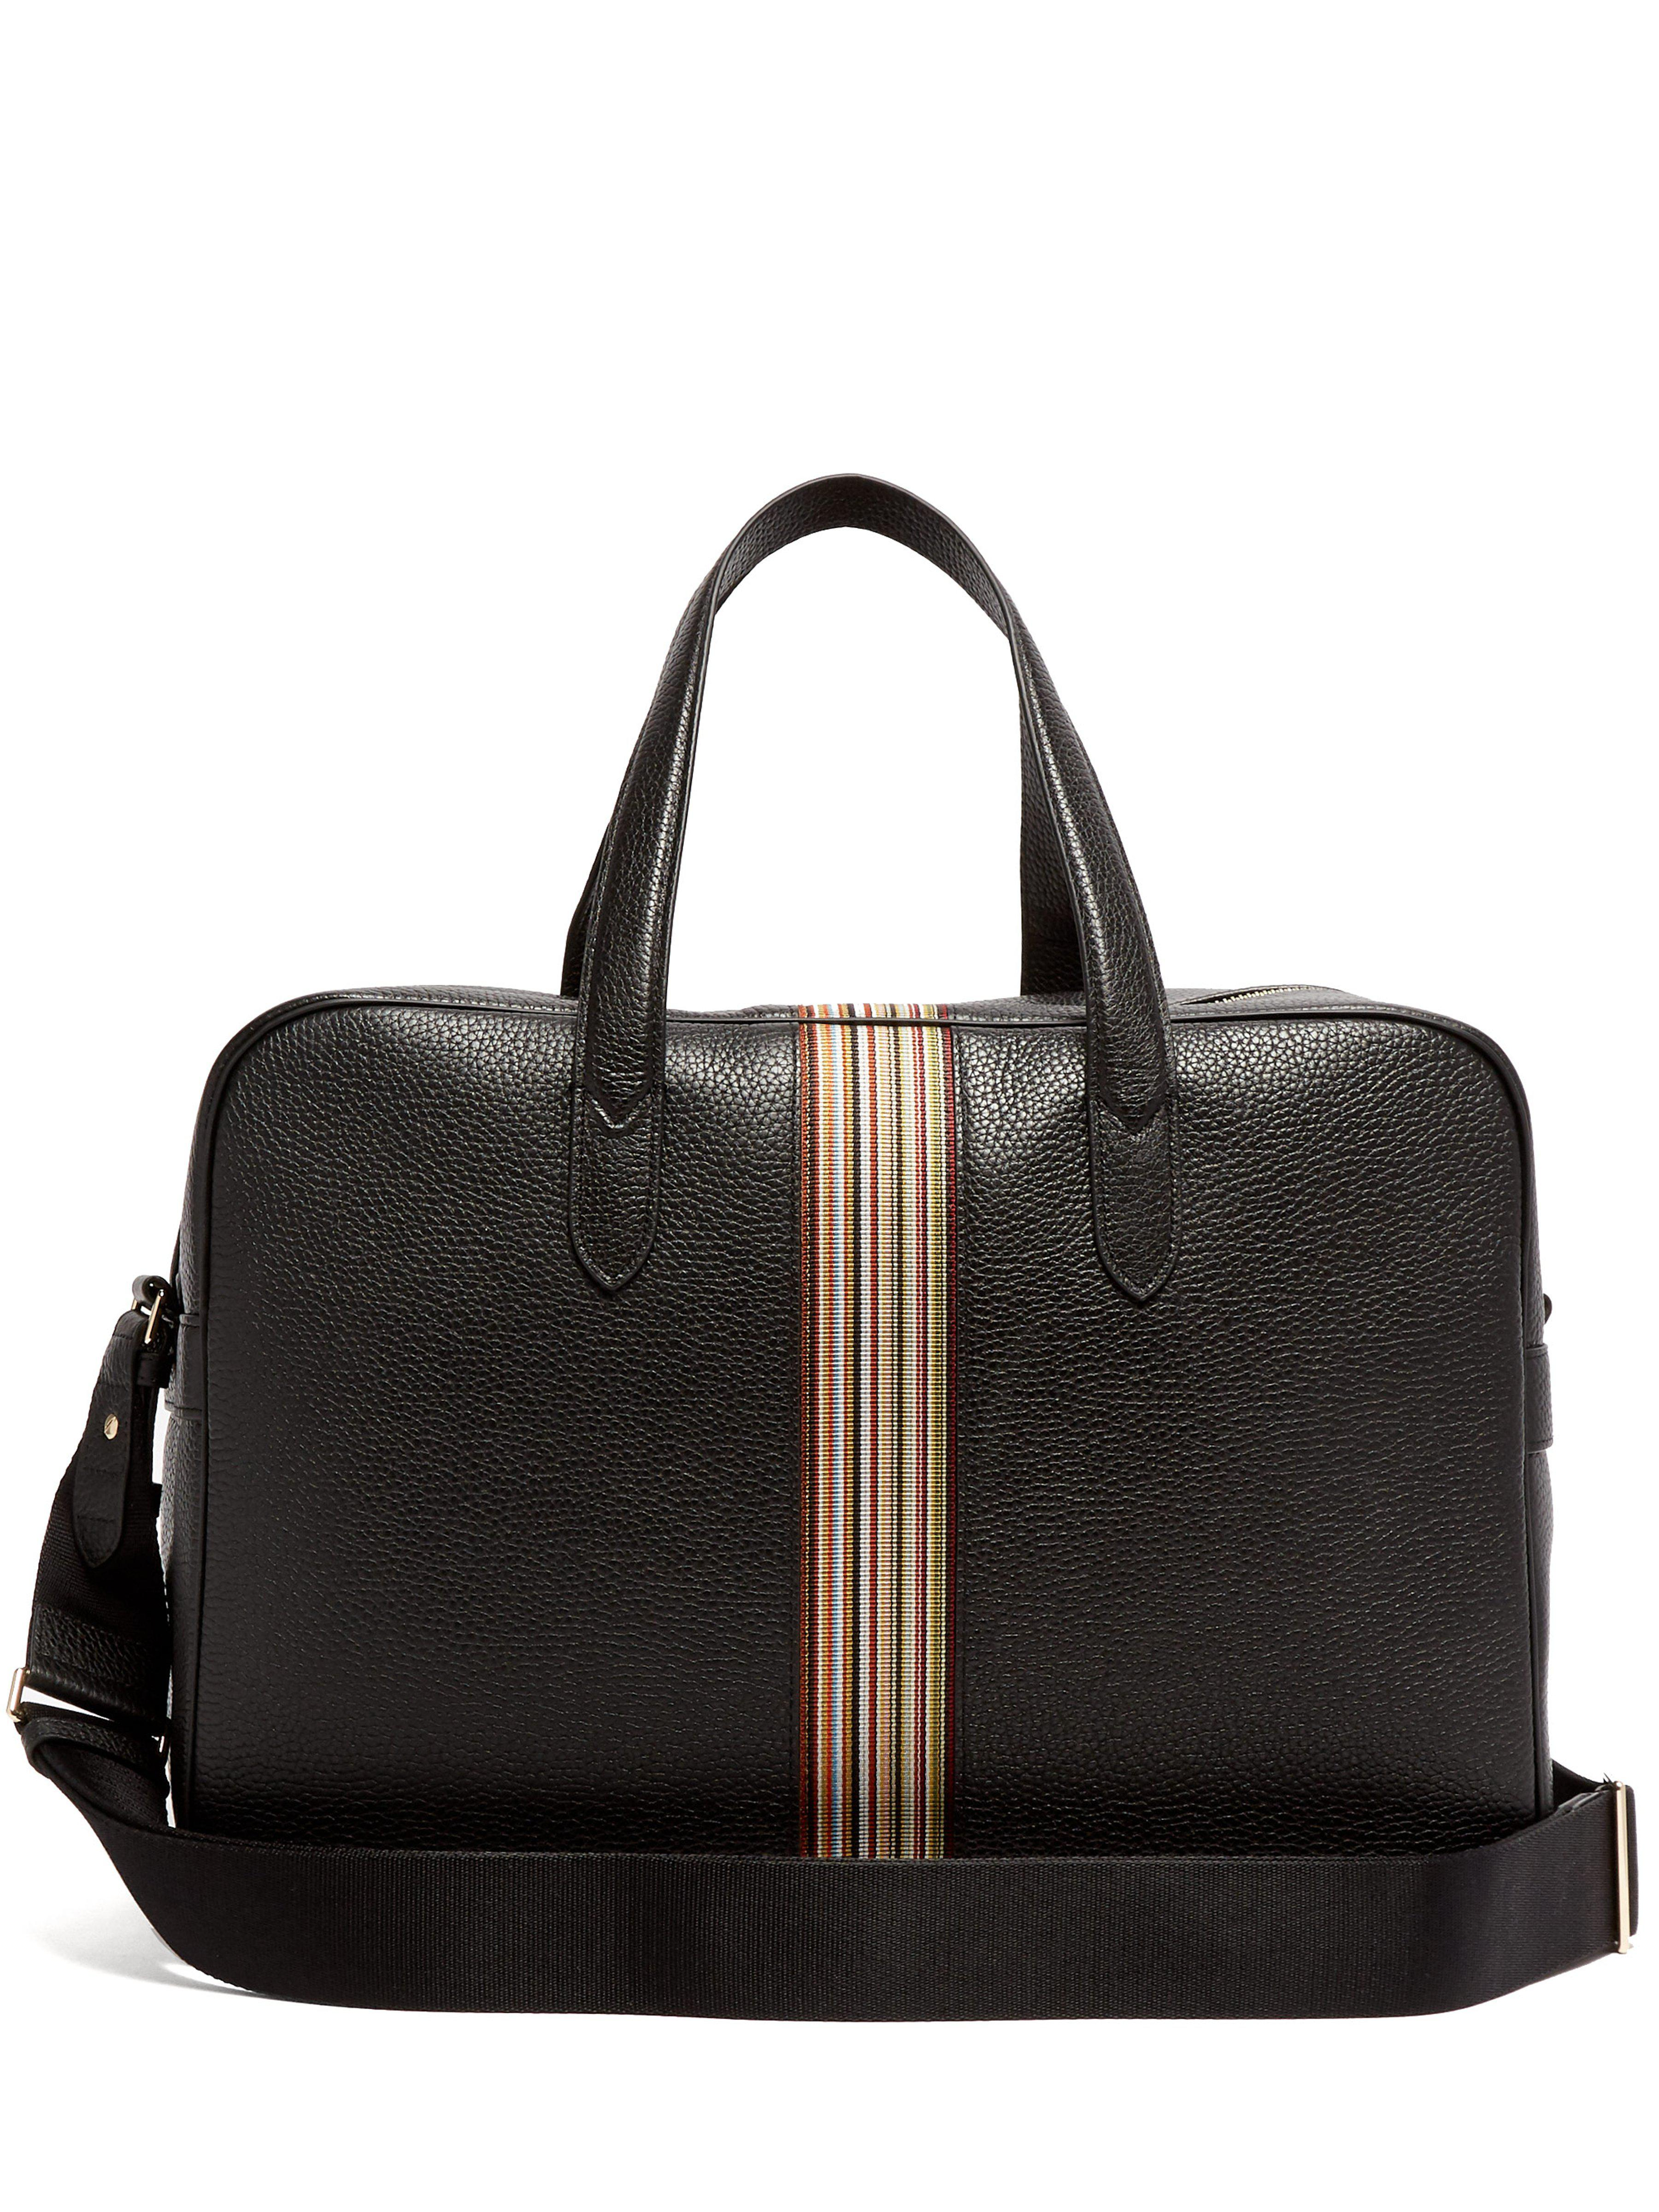 Paul Smith Signature Stripe Leather Weekend Bag in Black for Men - Lyst 50c697d490e2a